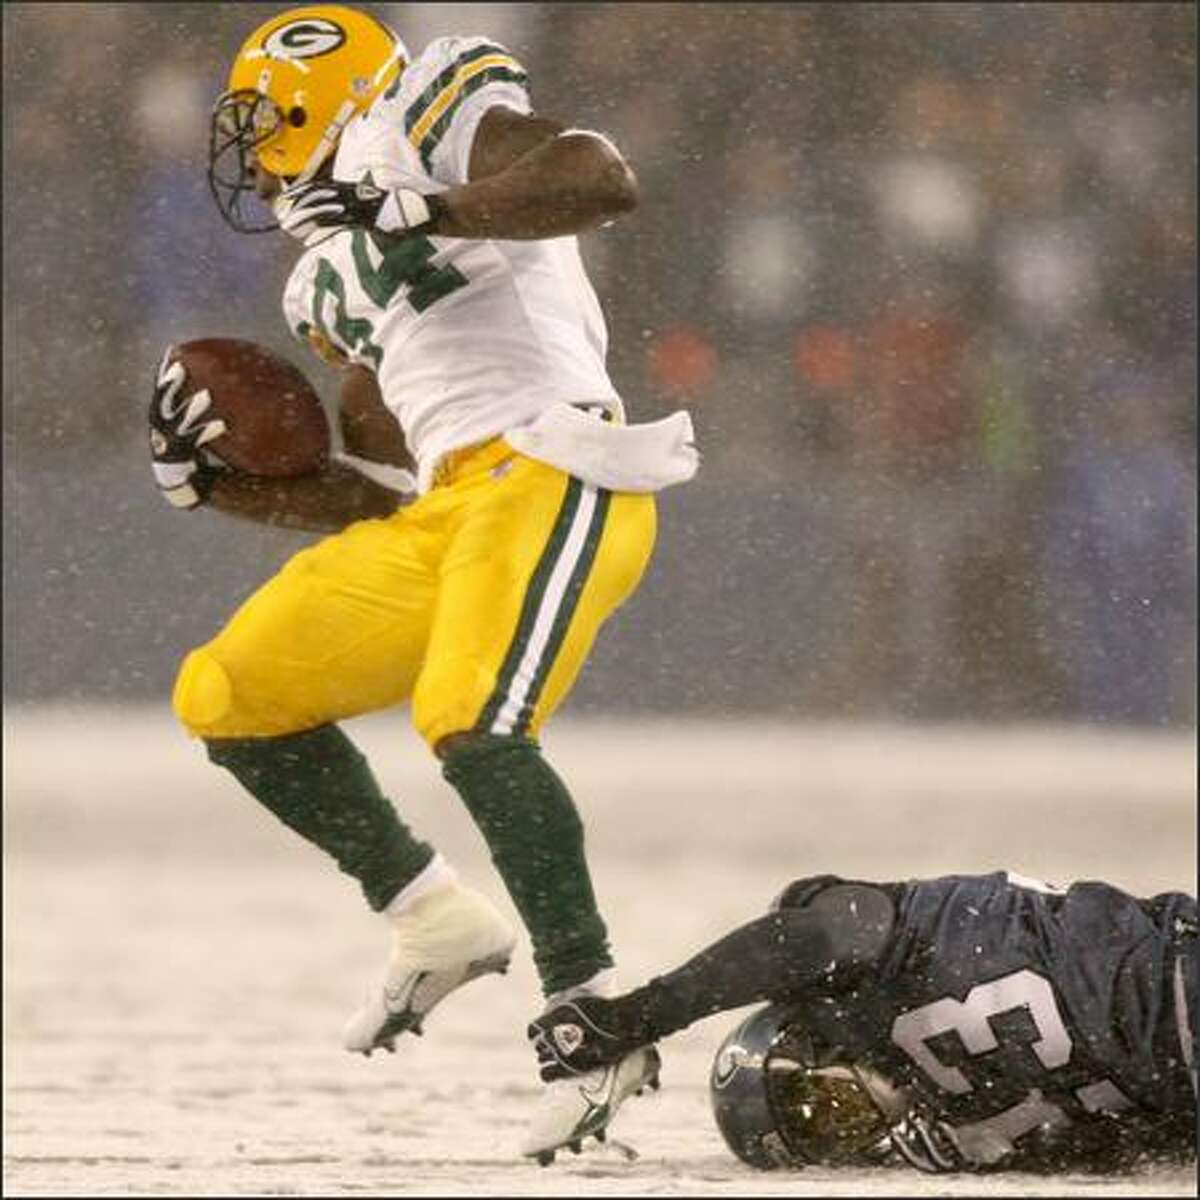 Marcus Trufant tries for an ankle tackle of Packers' running back Vernand Morency in the first quarter as the Seattle Seahawks play the Green Bay Packers on Monday Night Football.